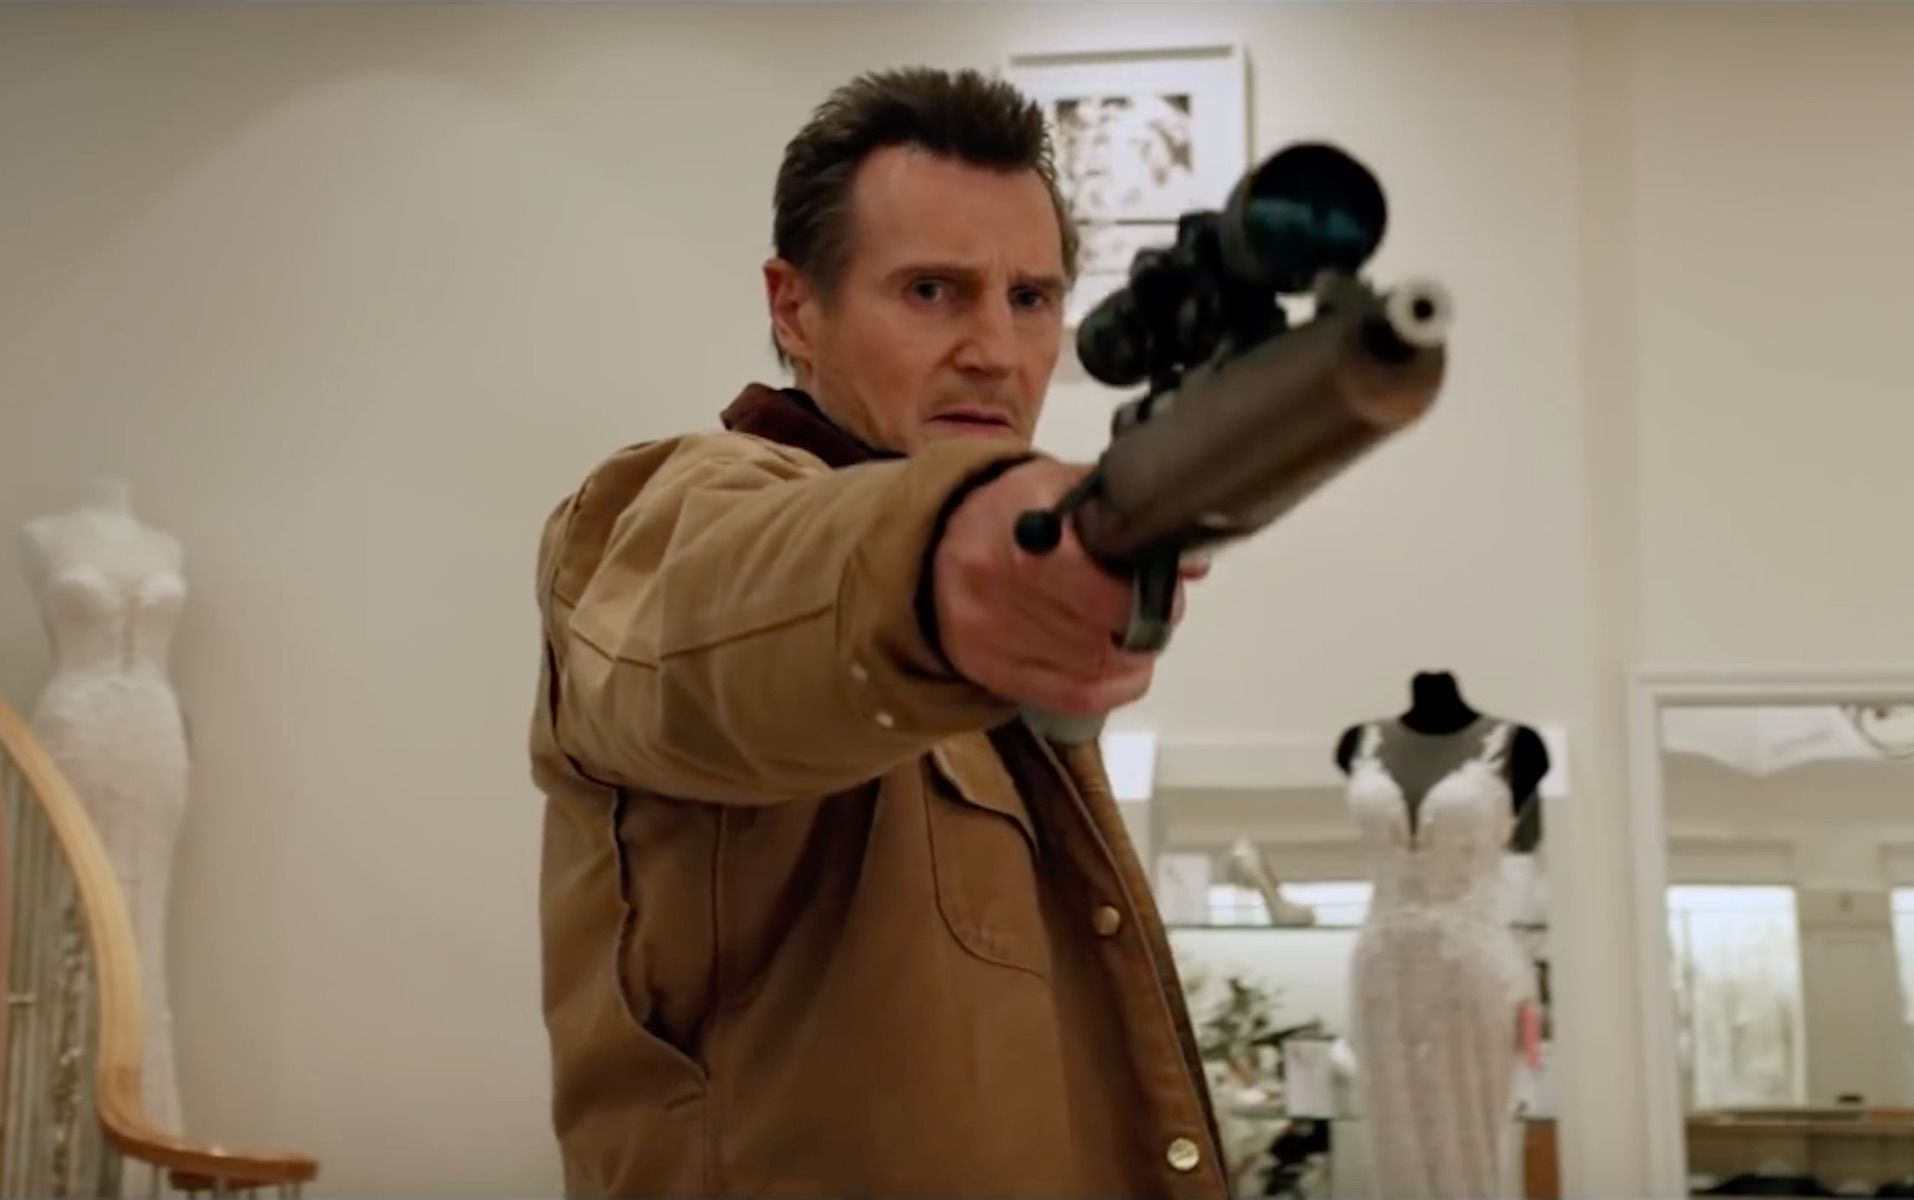 Sang Froid Film Complet En Francais En Ligne Stream Complet Sang Froid Hd Online Movie Free Download Free Engl Best Action Movies Liam Neeson Action Movies